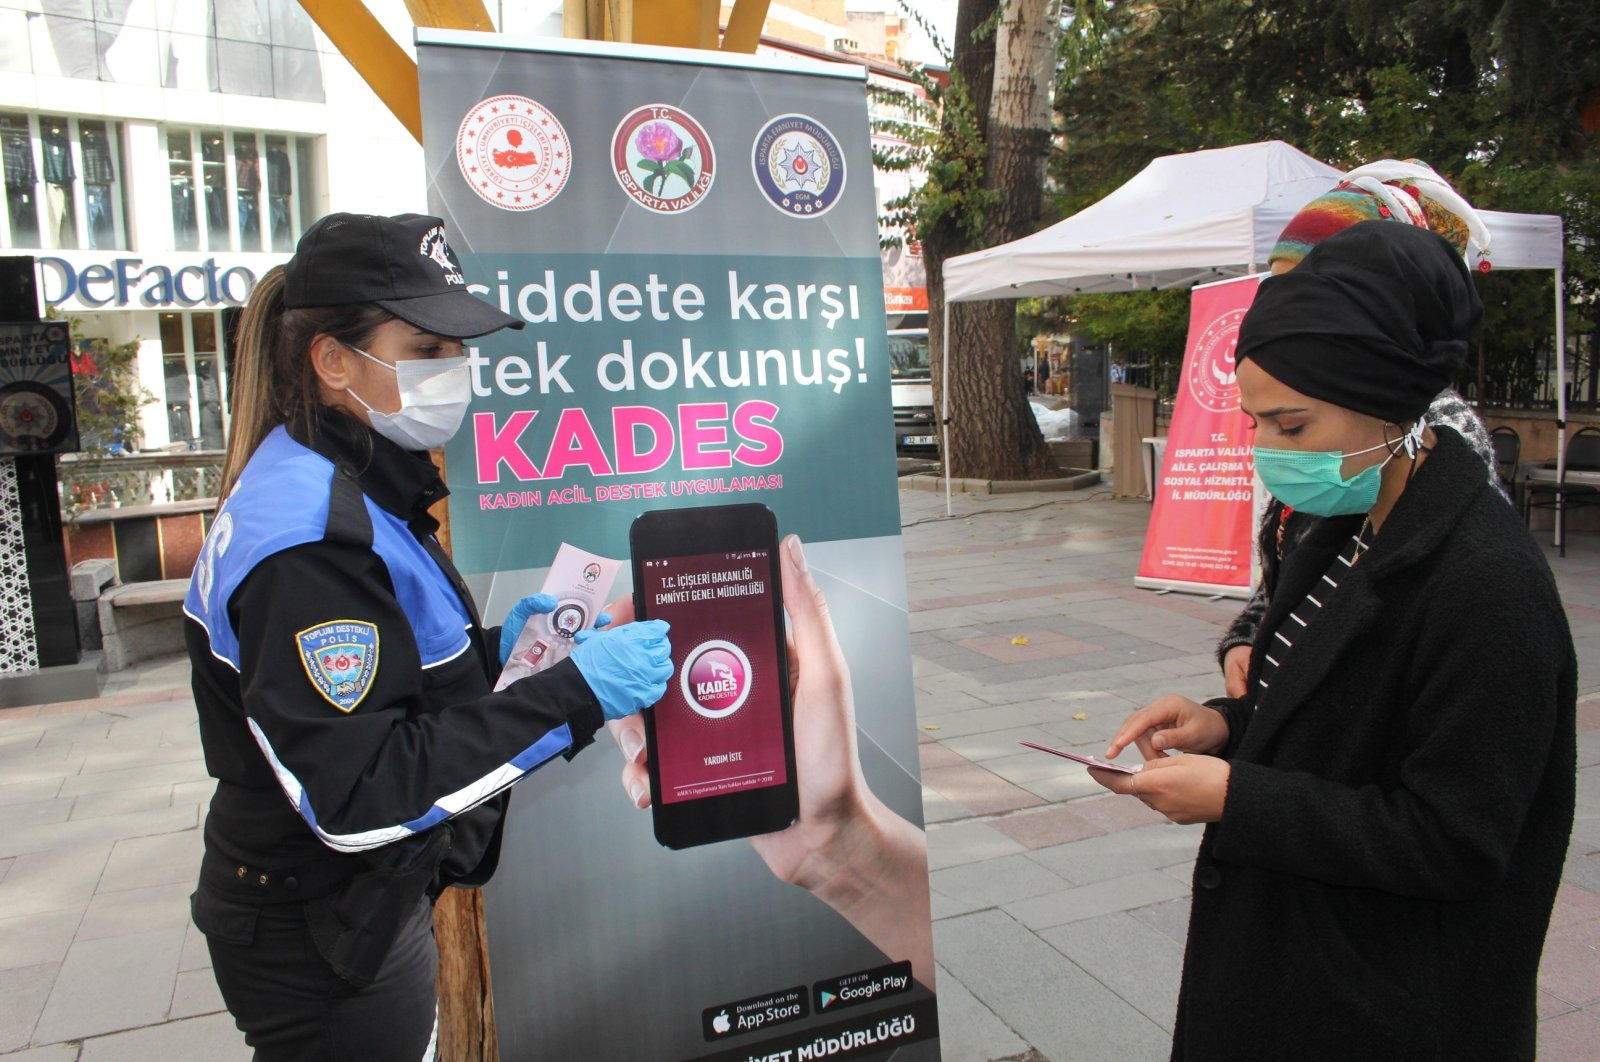 A policewoman shows how to download KADES, an app for reporting domestic violence, to a woman, in Isparta, western Turkey, Nov. 25, 2020. (İHA Photo)